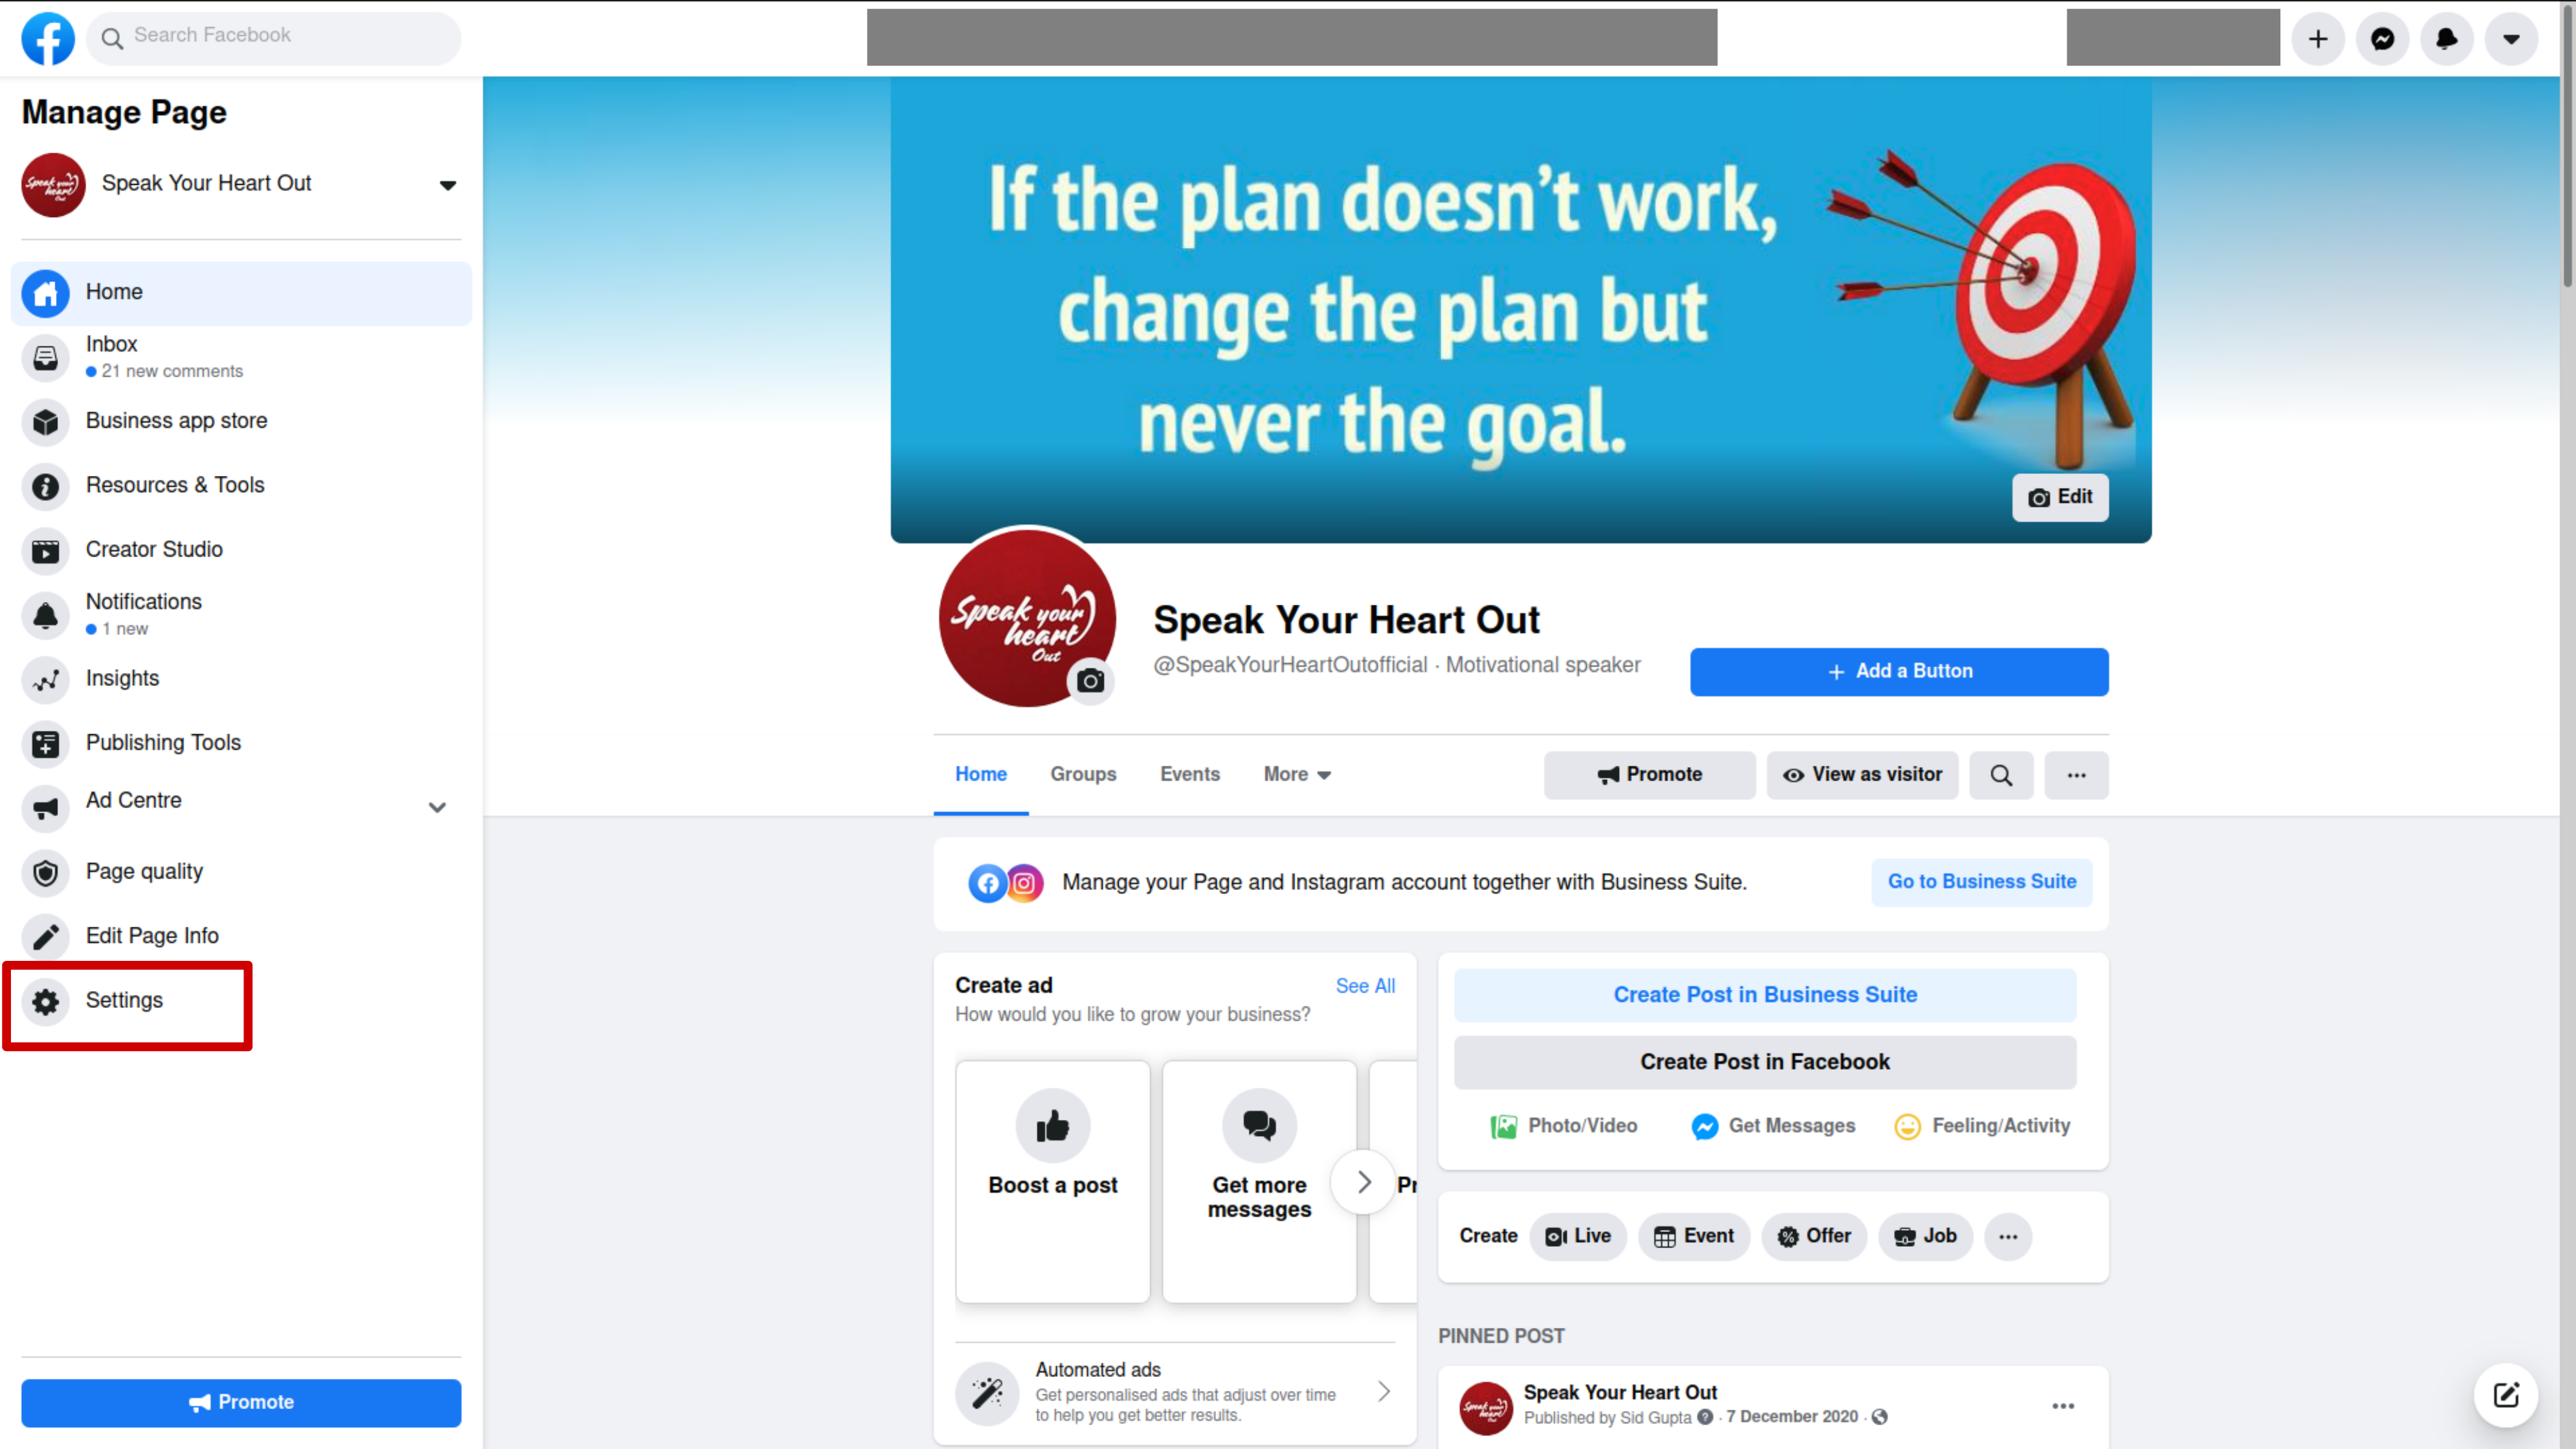 The procedure to schedule your Facebook Page and Instagram post with Facebook Business Suite